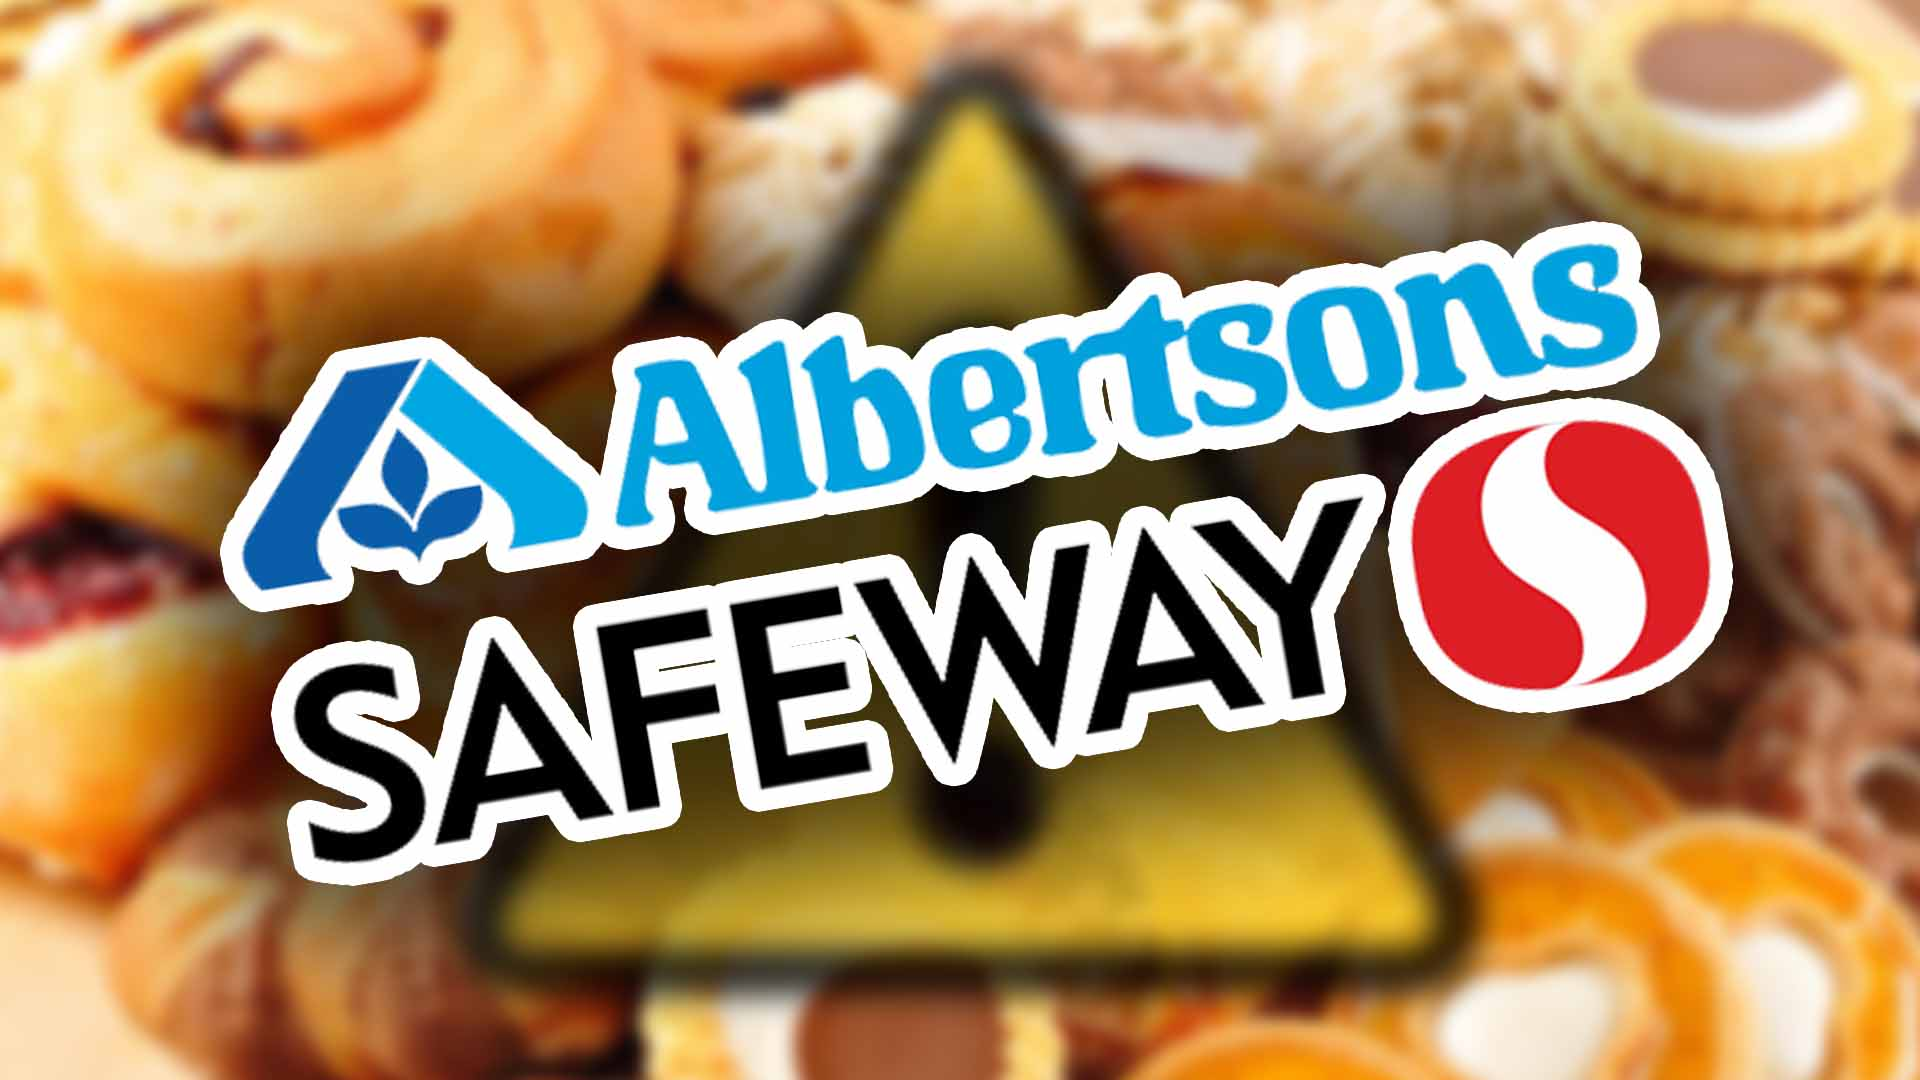 Albertsons Safeway recall bakery products over possible Salmonella